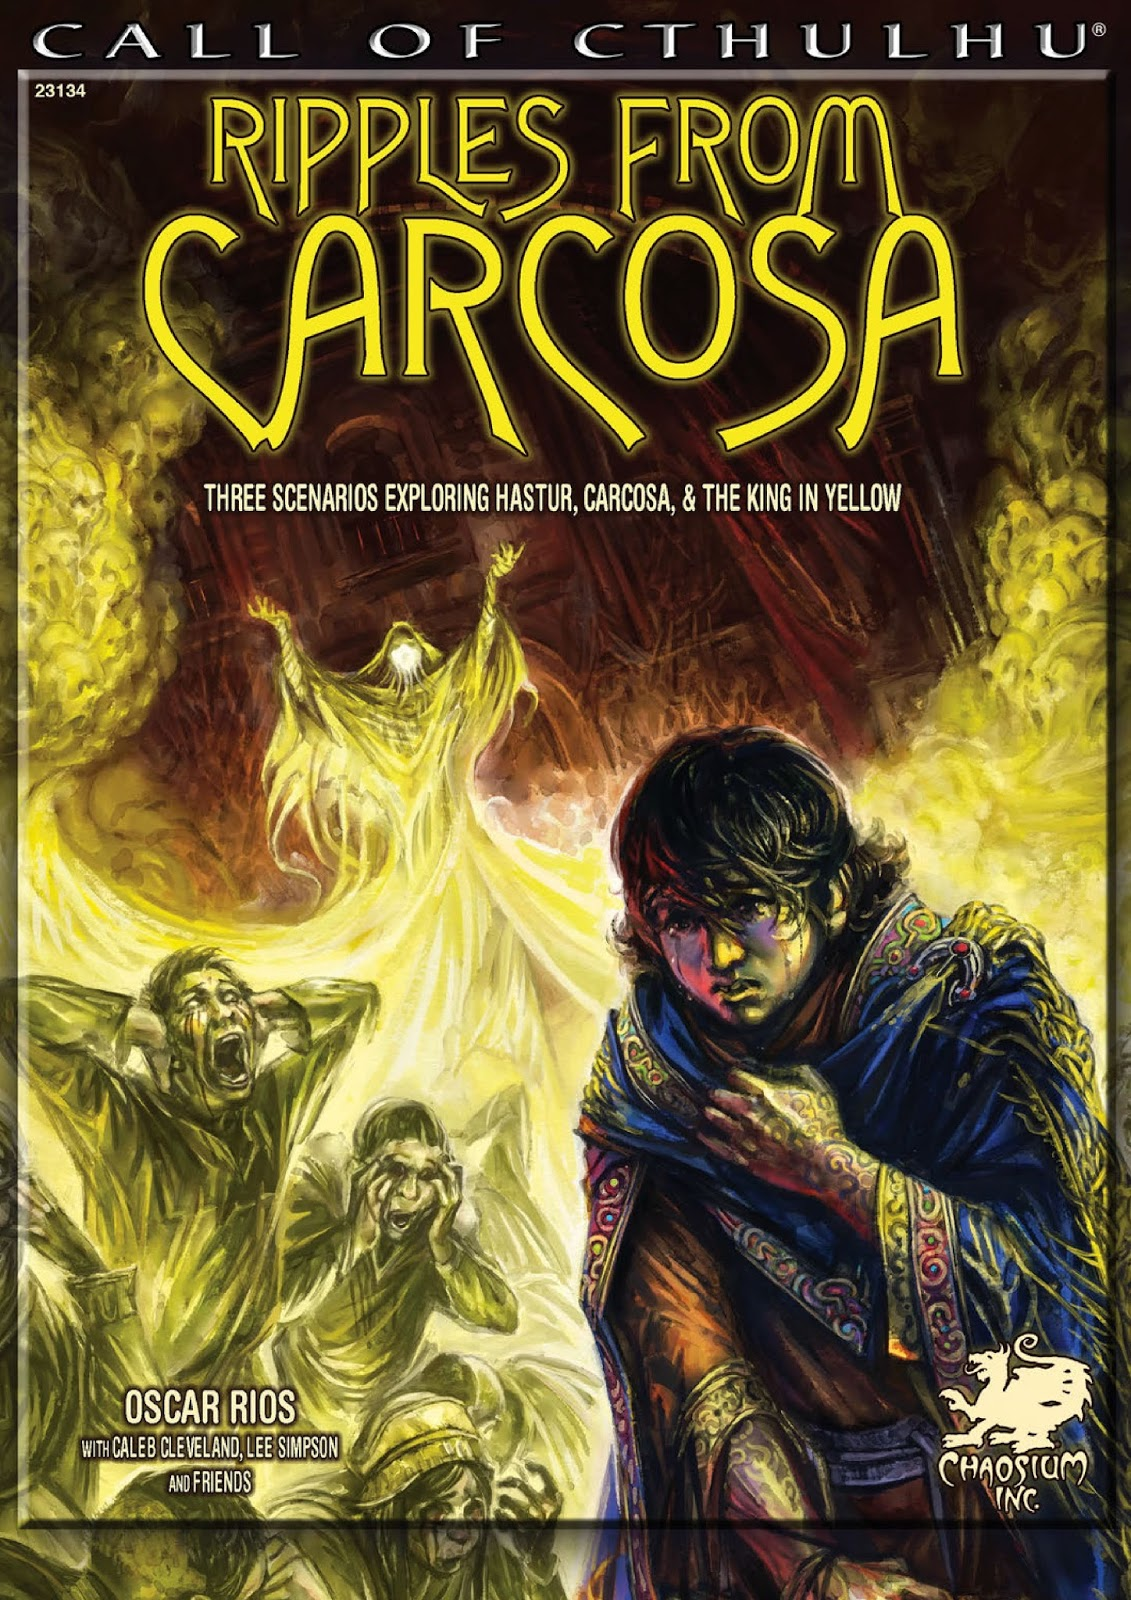 http://www.susurrosdesdelaoscuridad.com/2015/02/ripples-from-carcosa.html